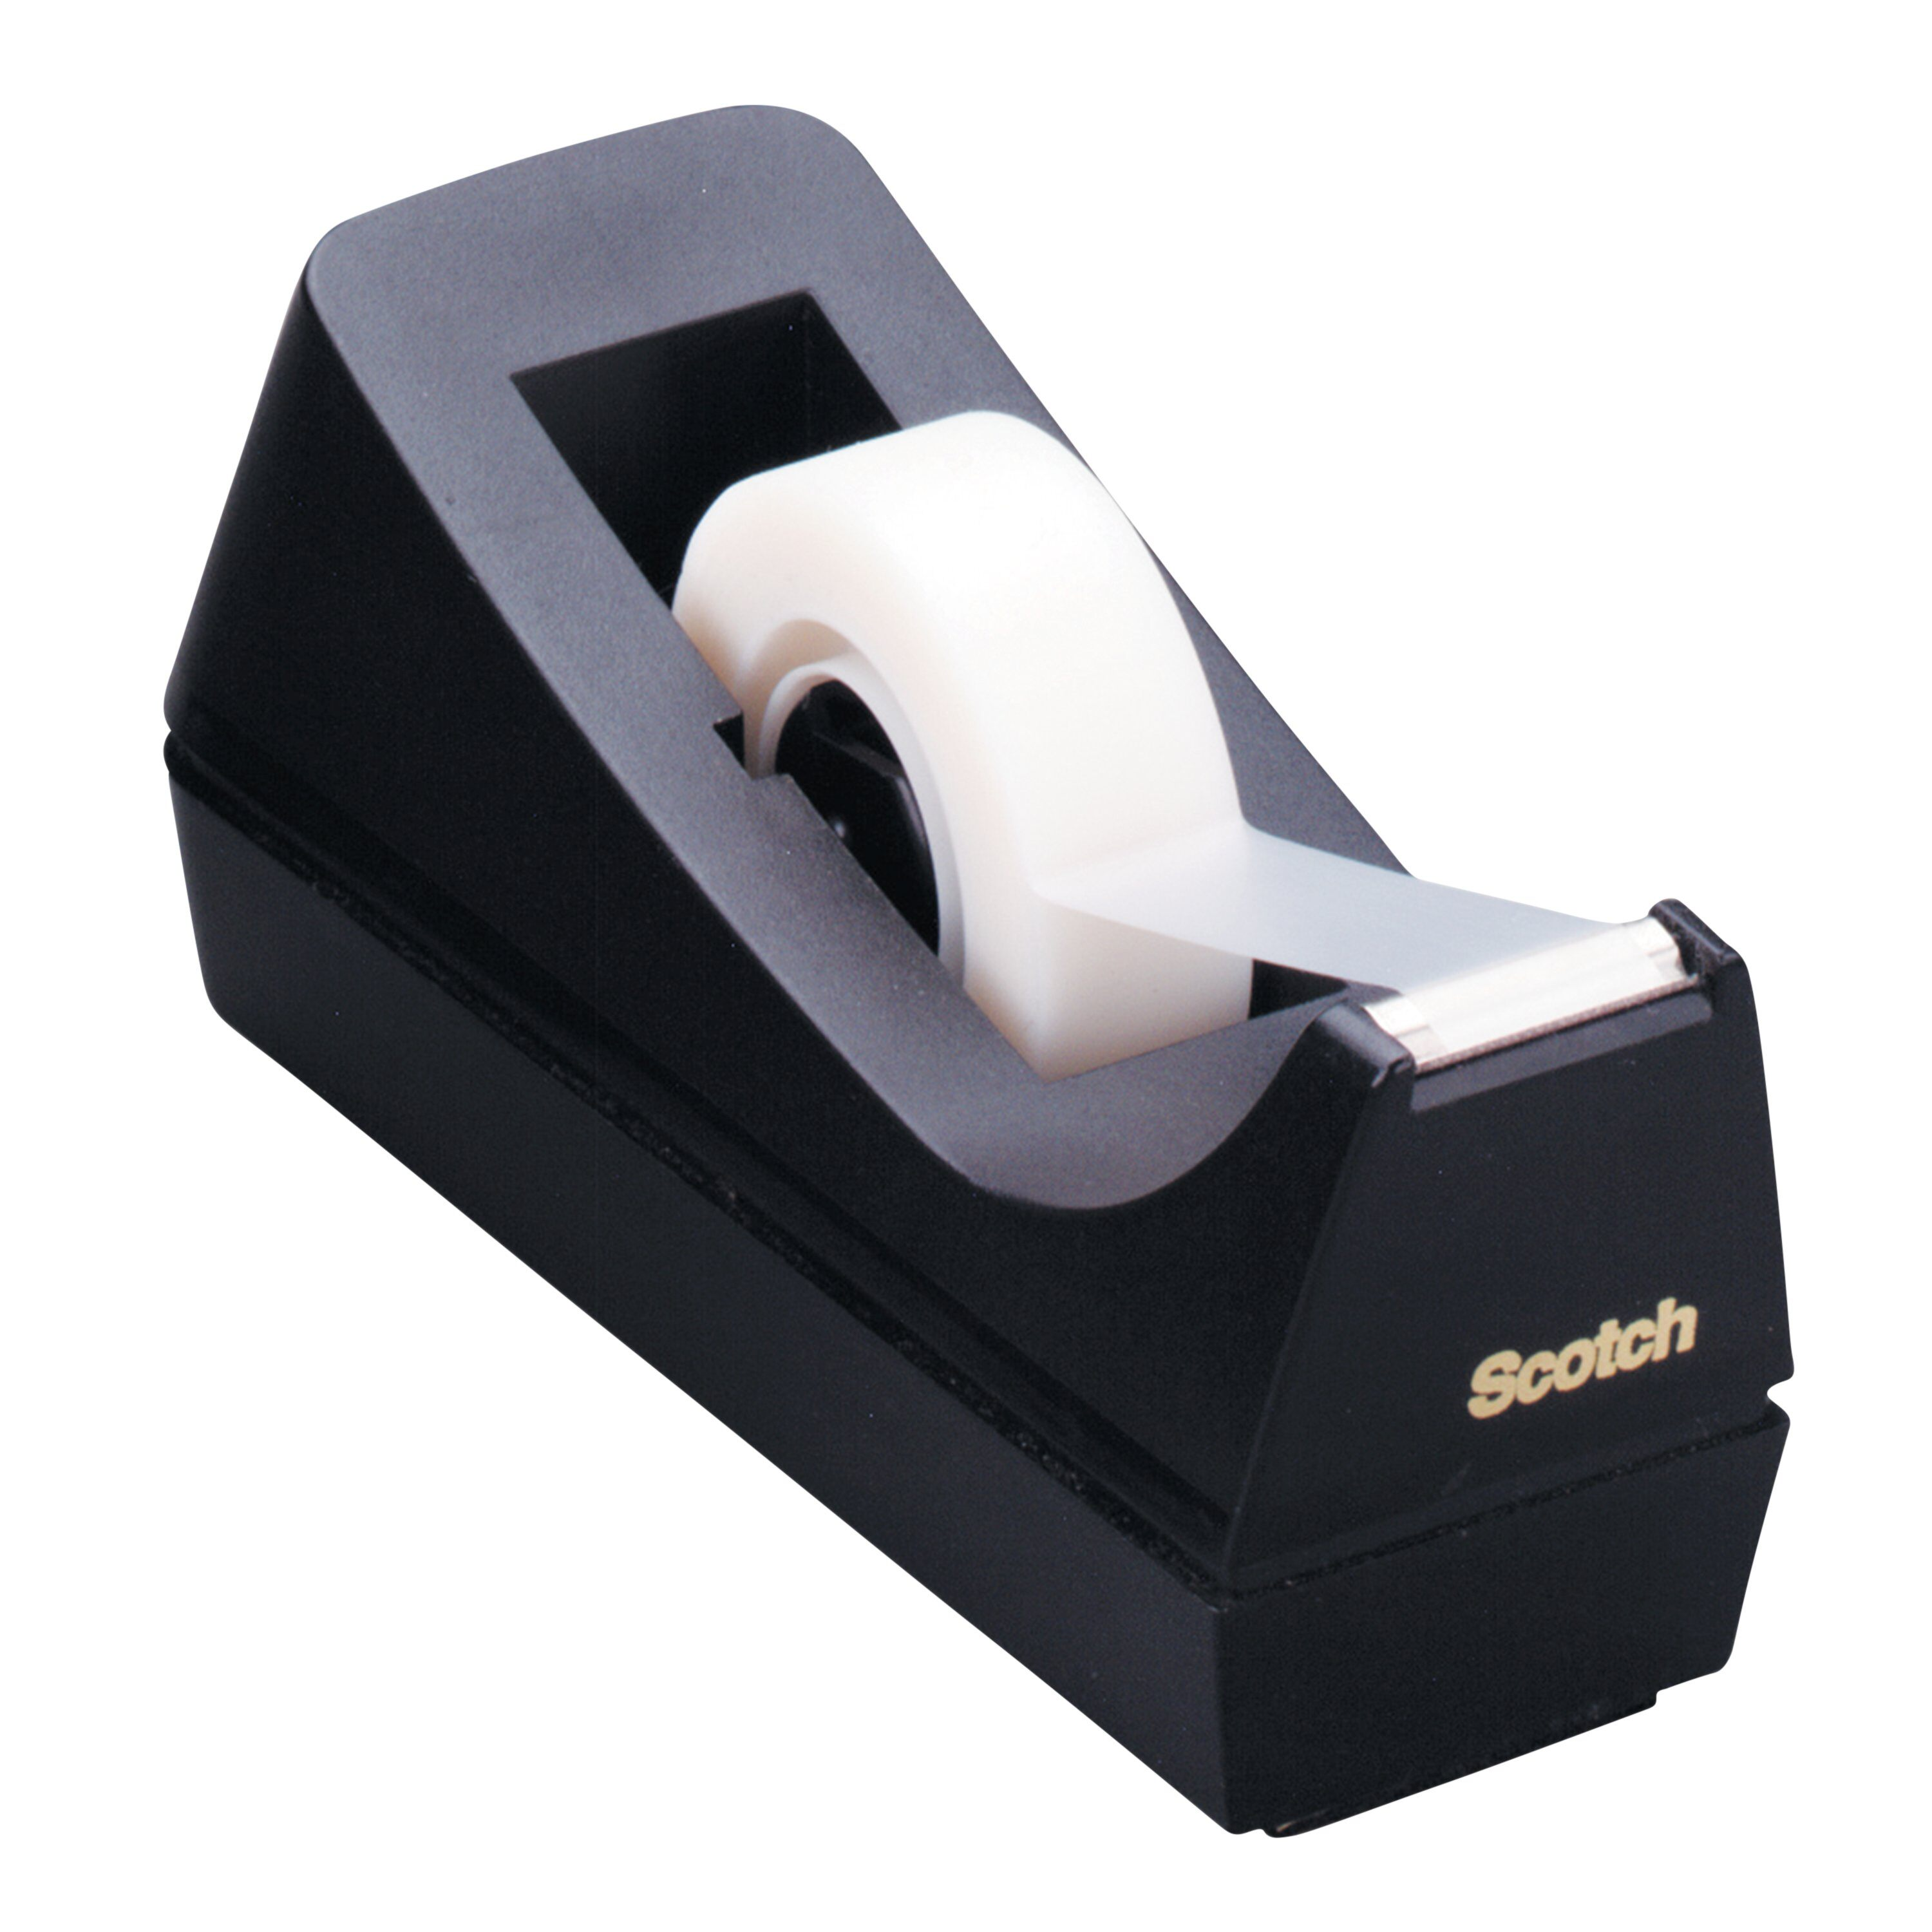 Made of 100/% Recycled Plastic 1 Pack Black Scotch Brand Desktop Tape Dispenser 1 Core C-38 Weighted Base 1-Pack